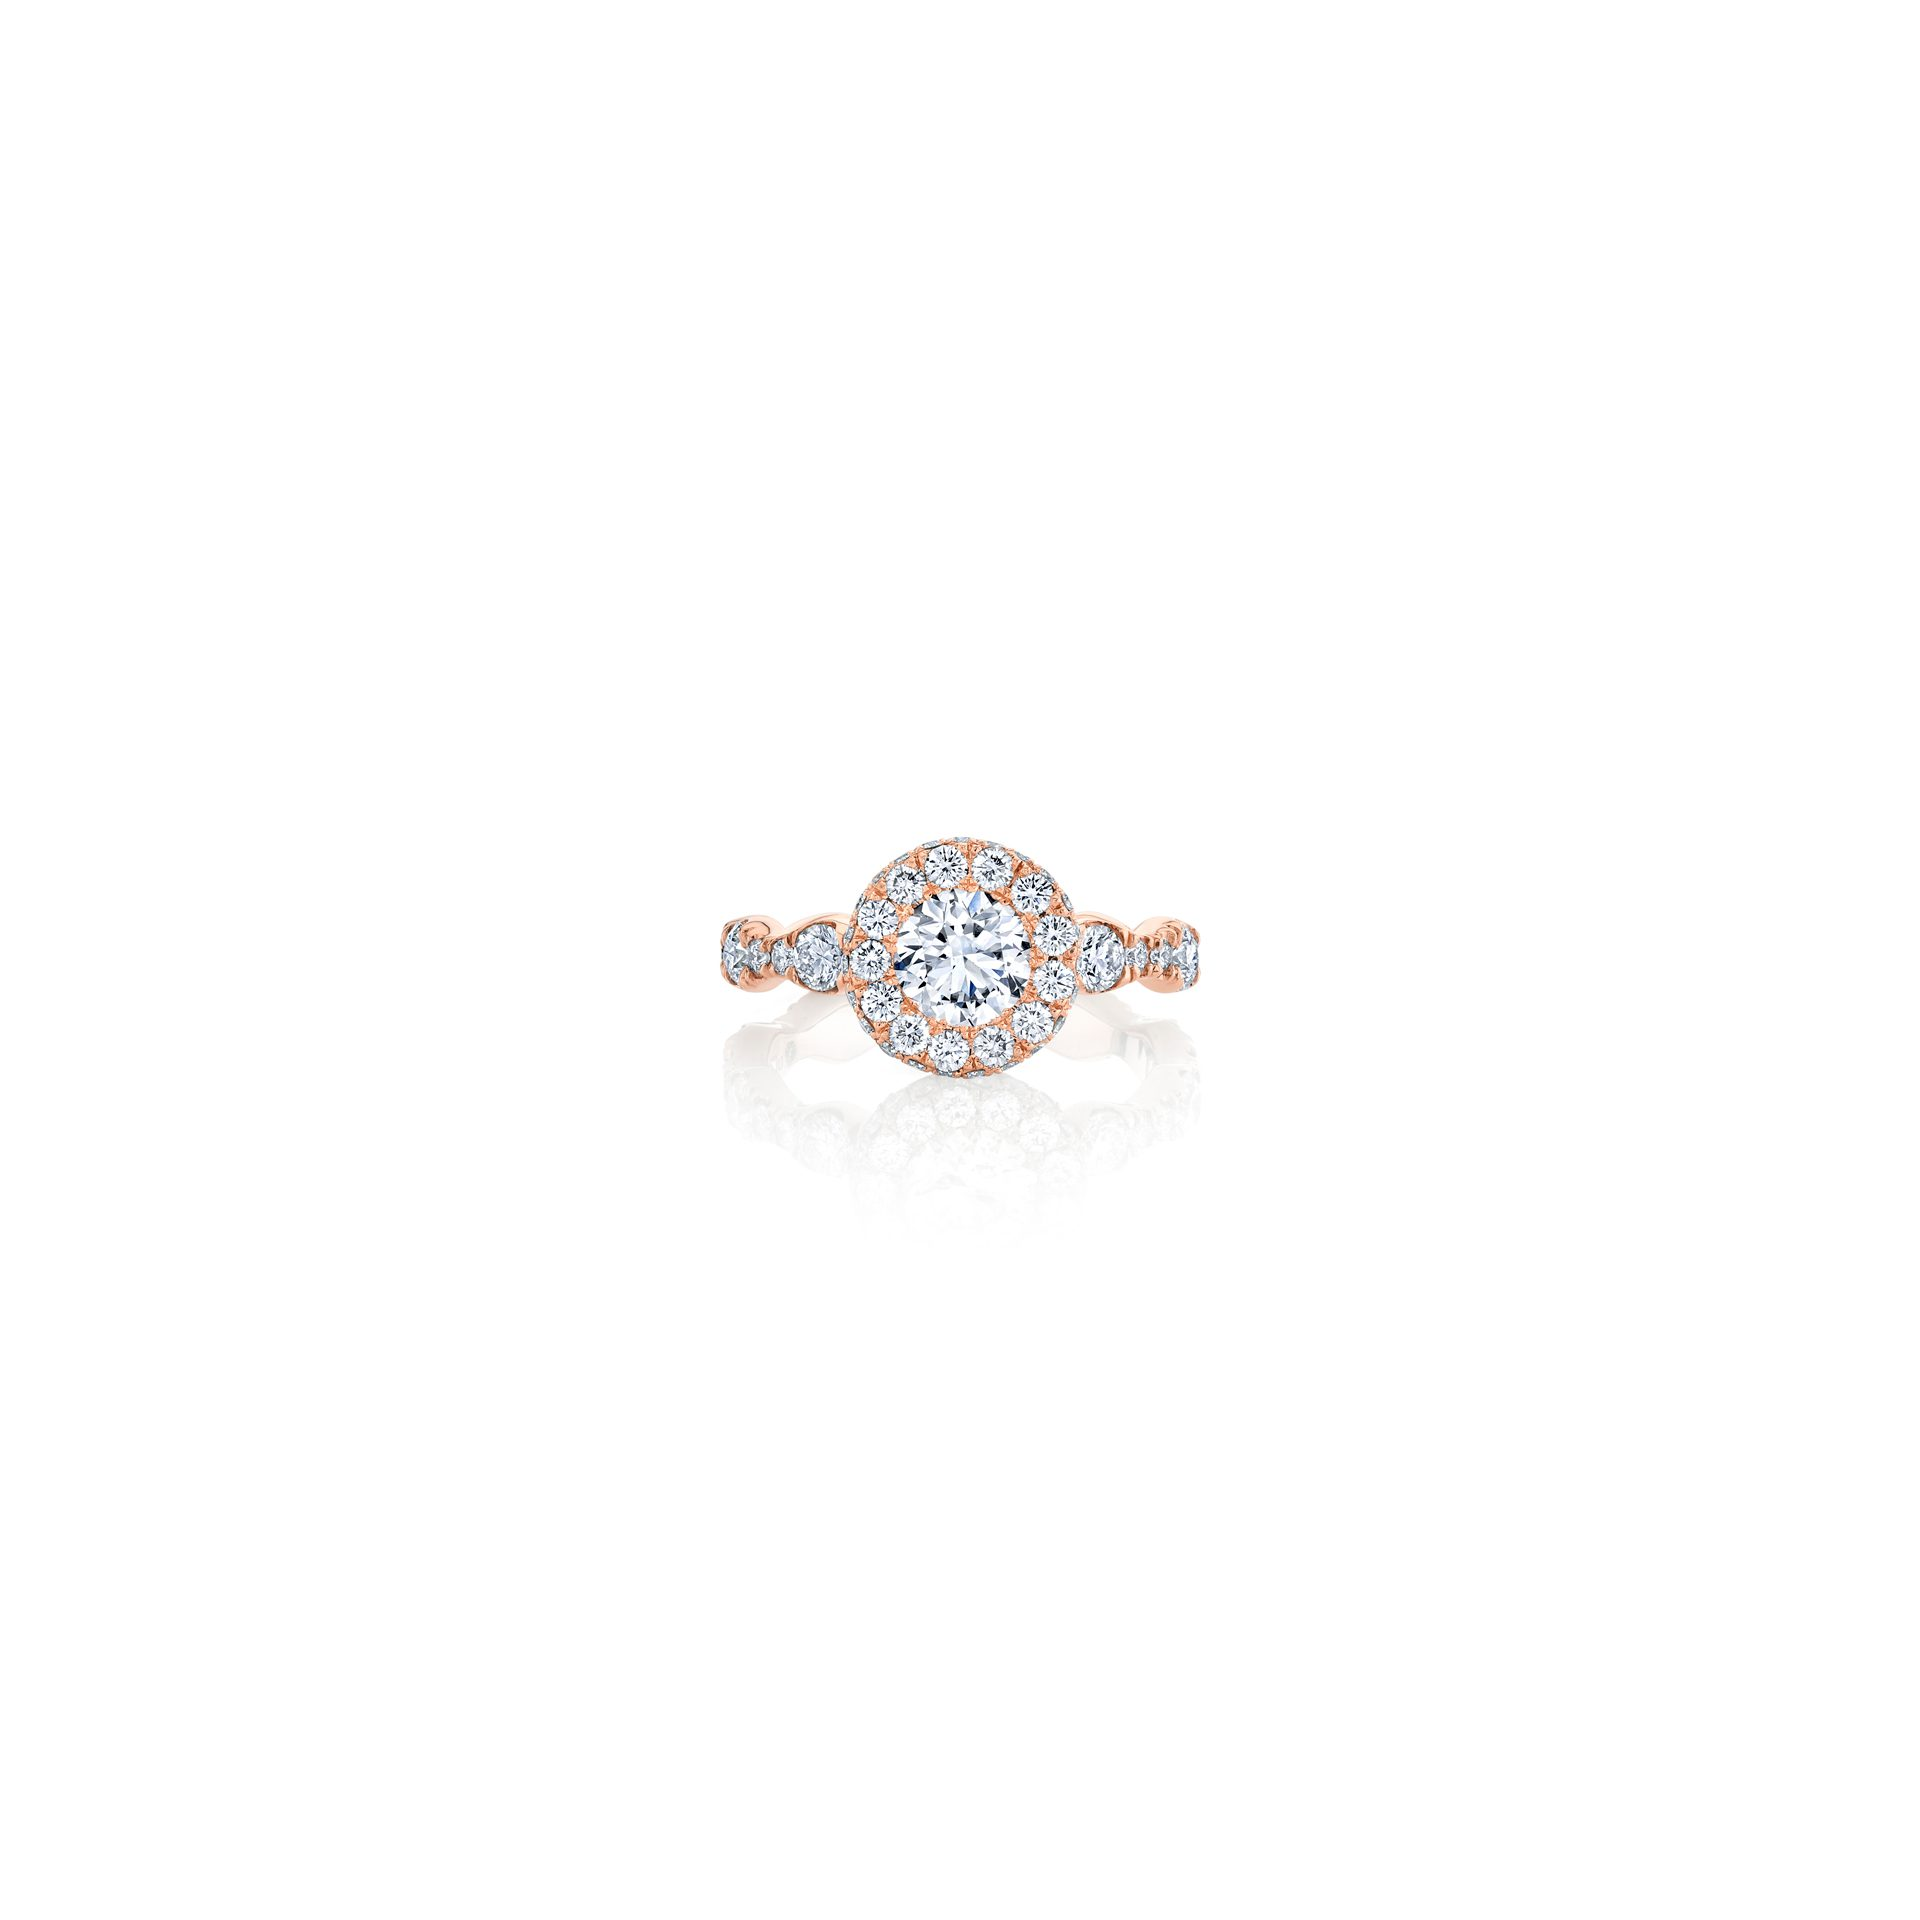 Yvonne Round Brilliant Seamless Halo® Engagement Ring with a diamond pavé wave band in 18k Rose Gold by Oui by Jean Dousset